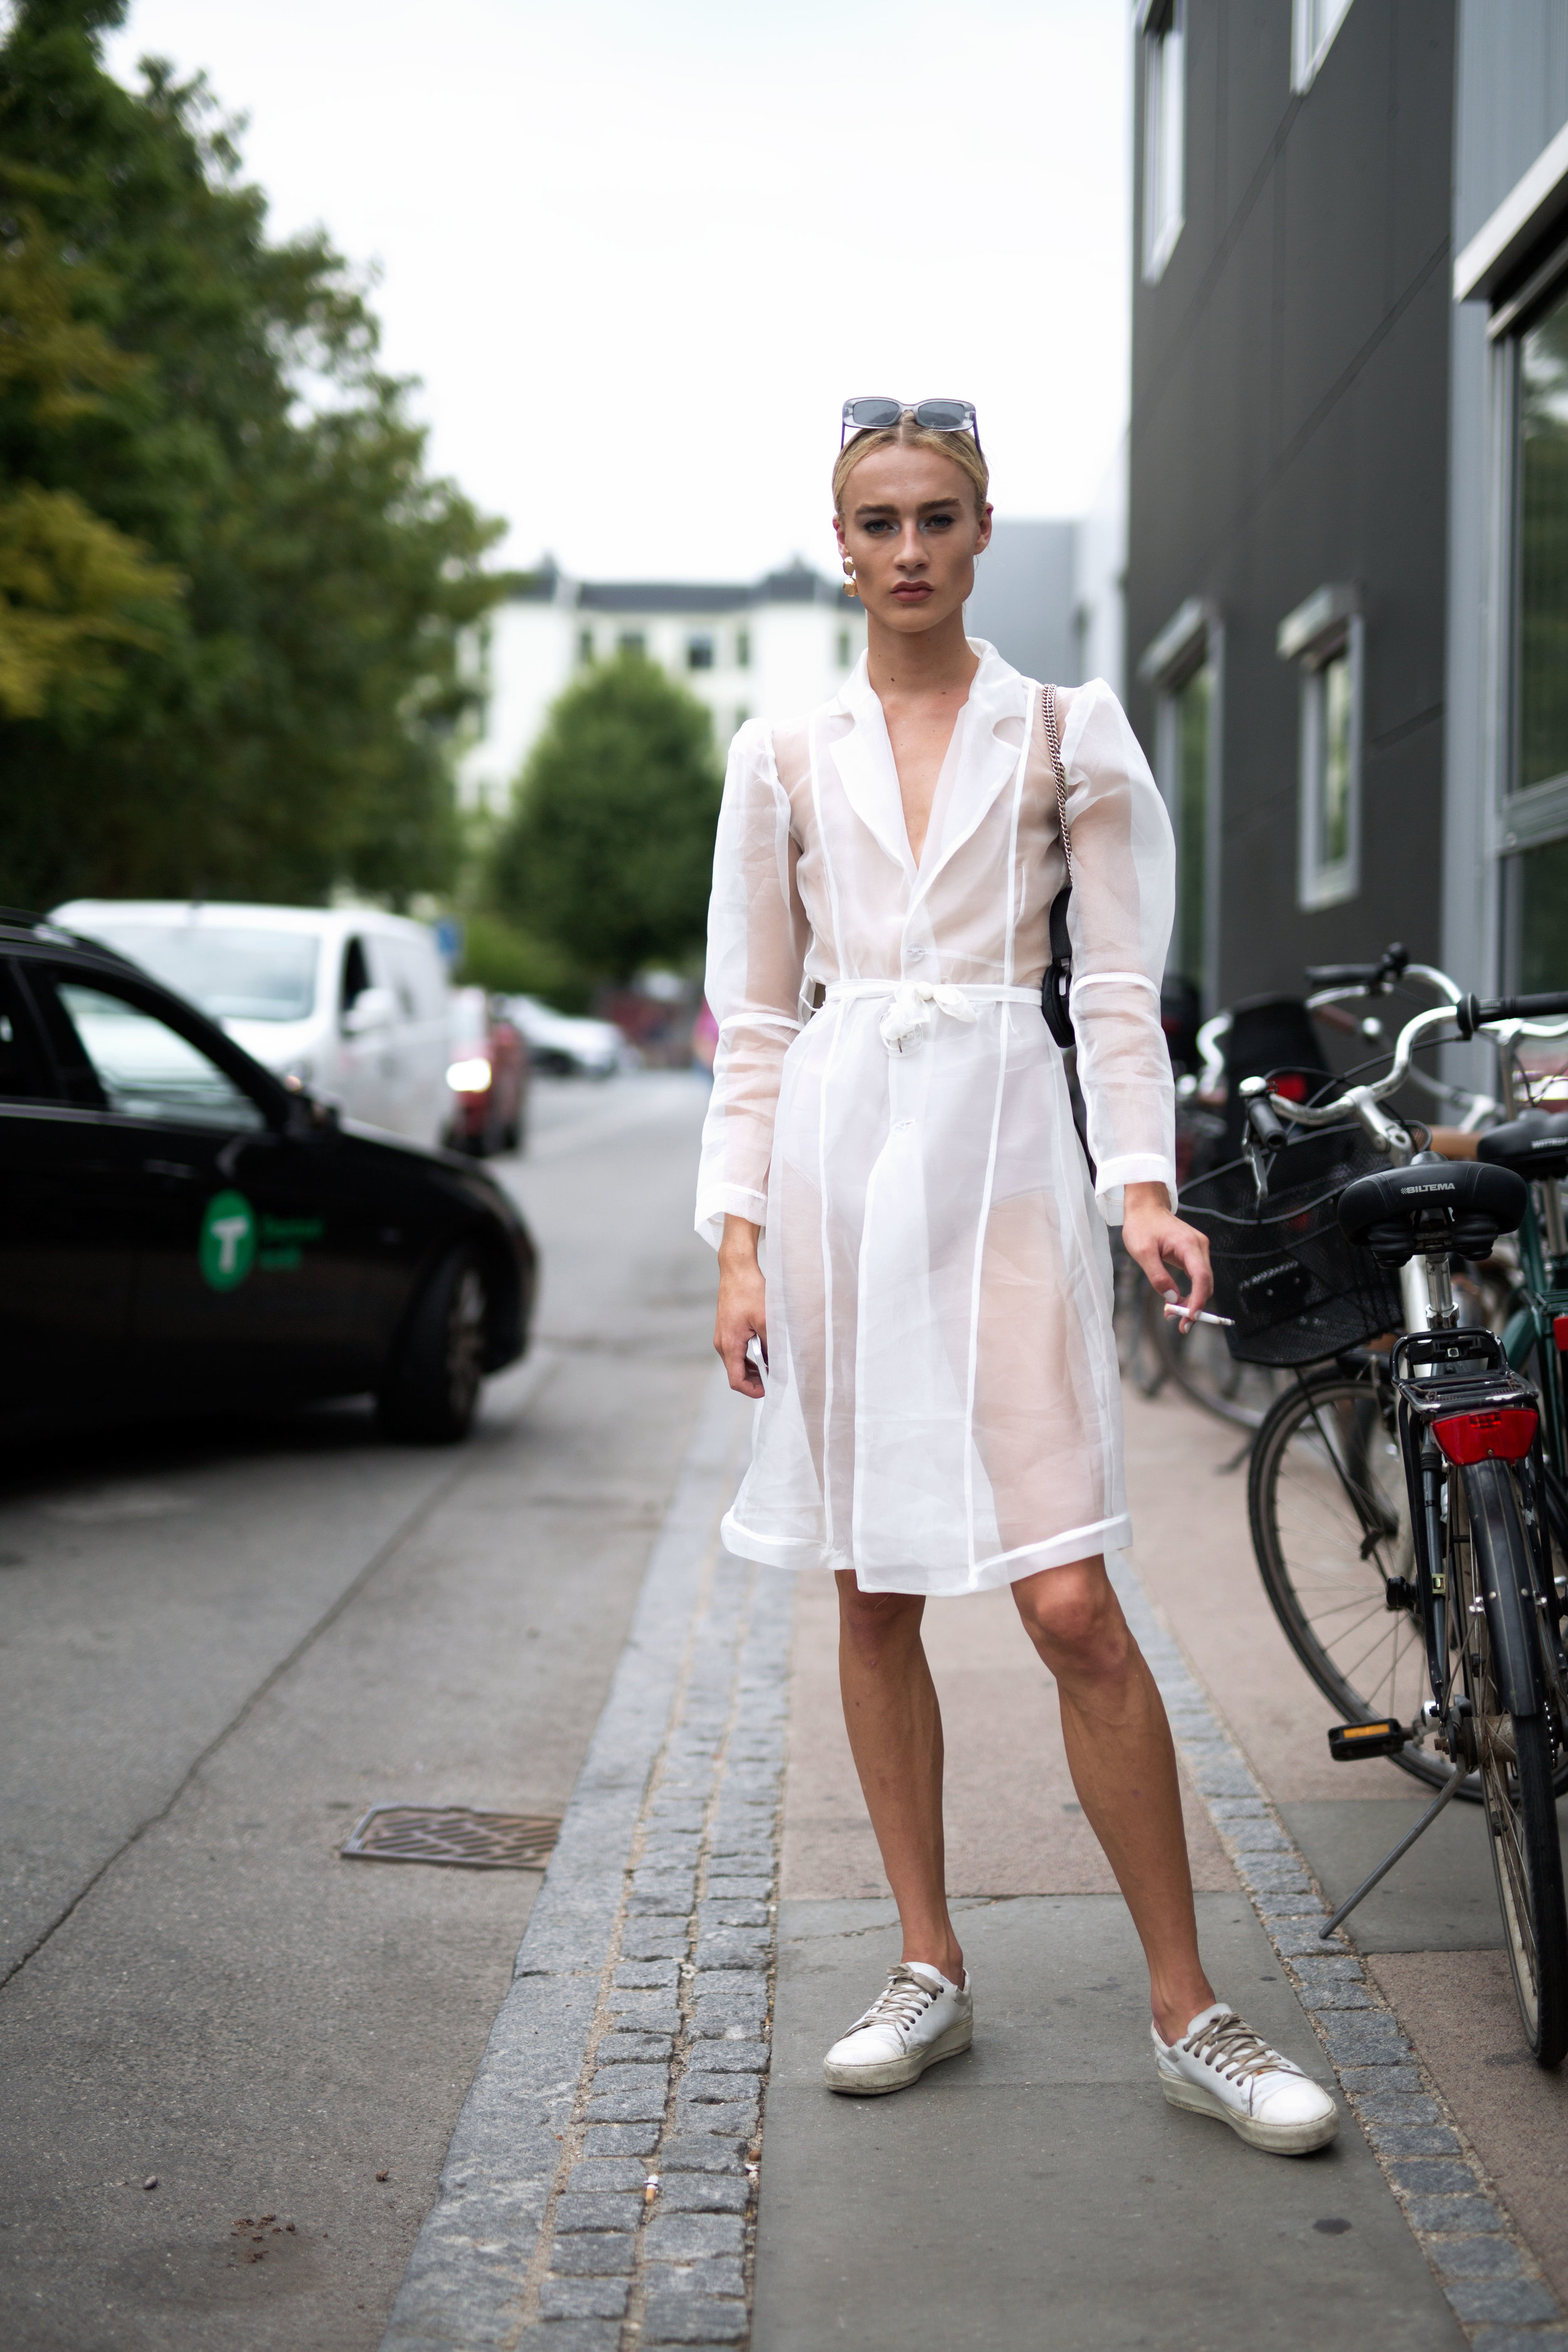 TheStreetland_Copenhagen_Fashion_Week_SS19_5.jpg